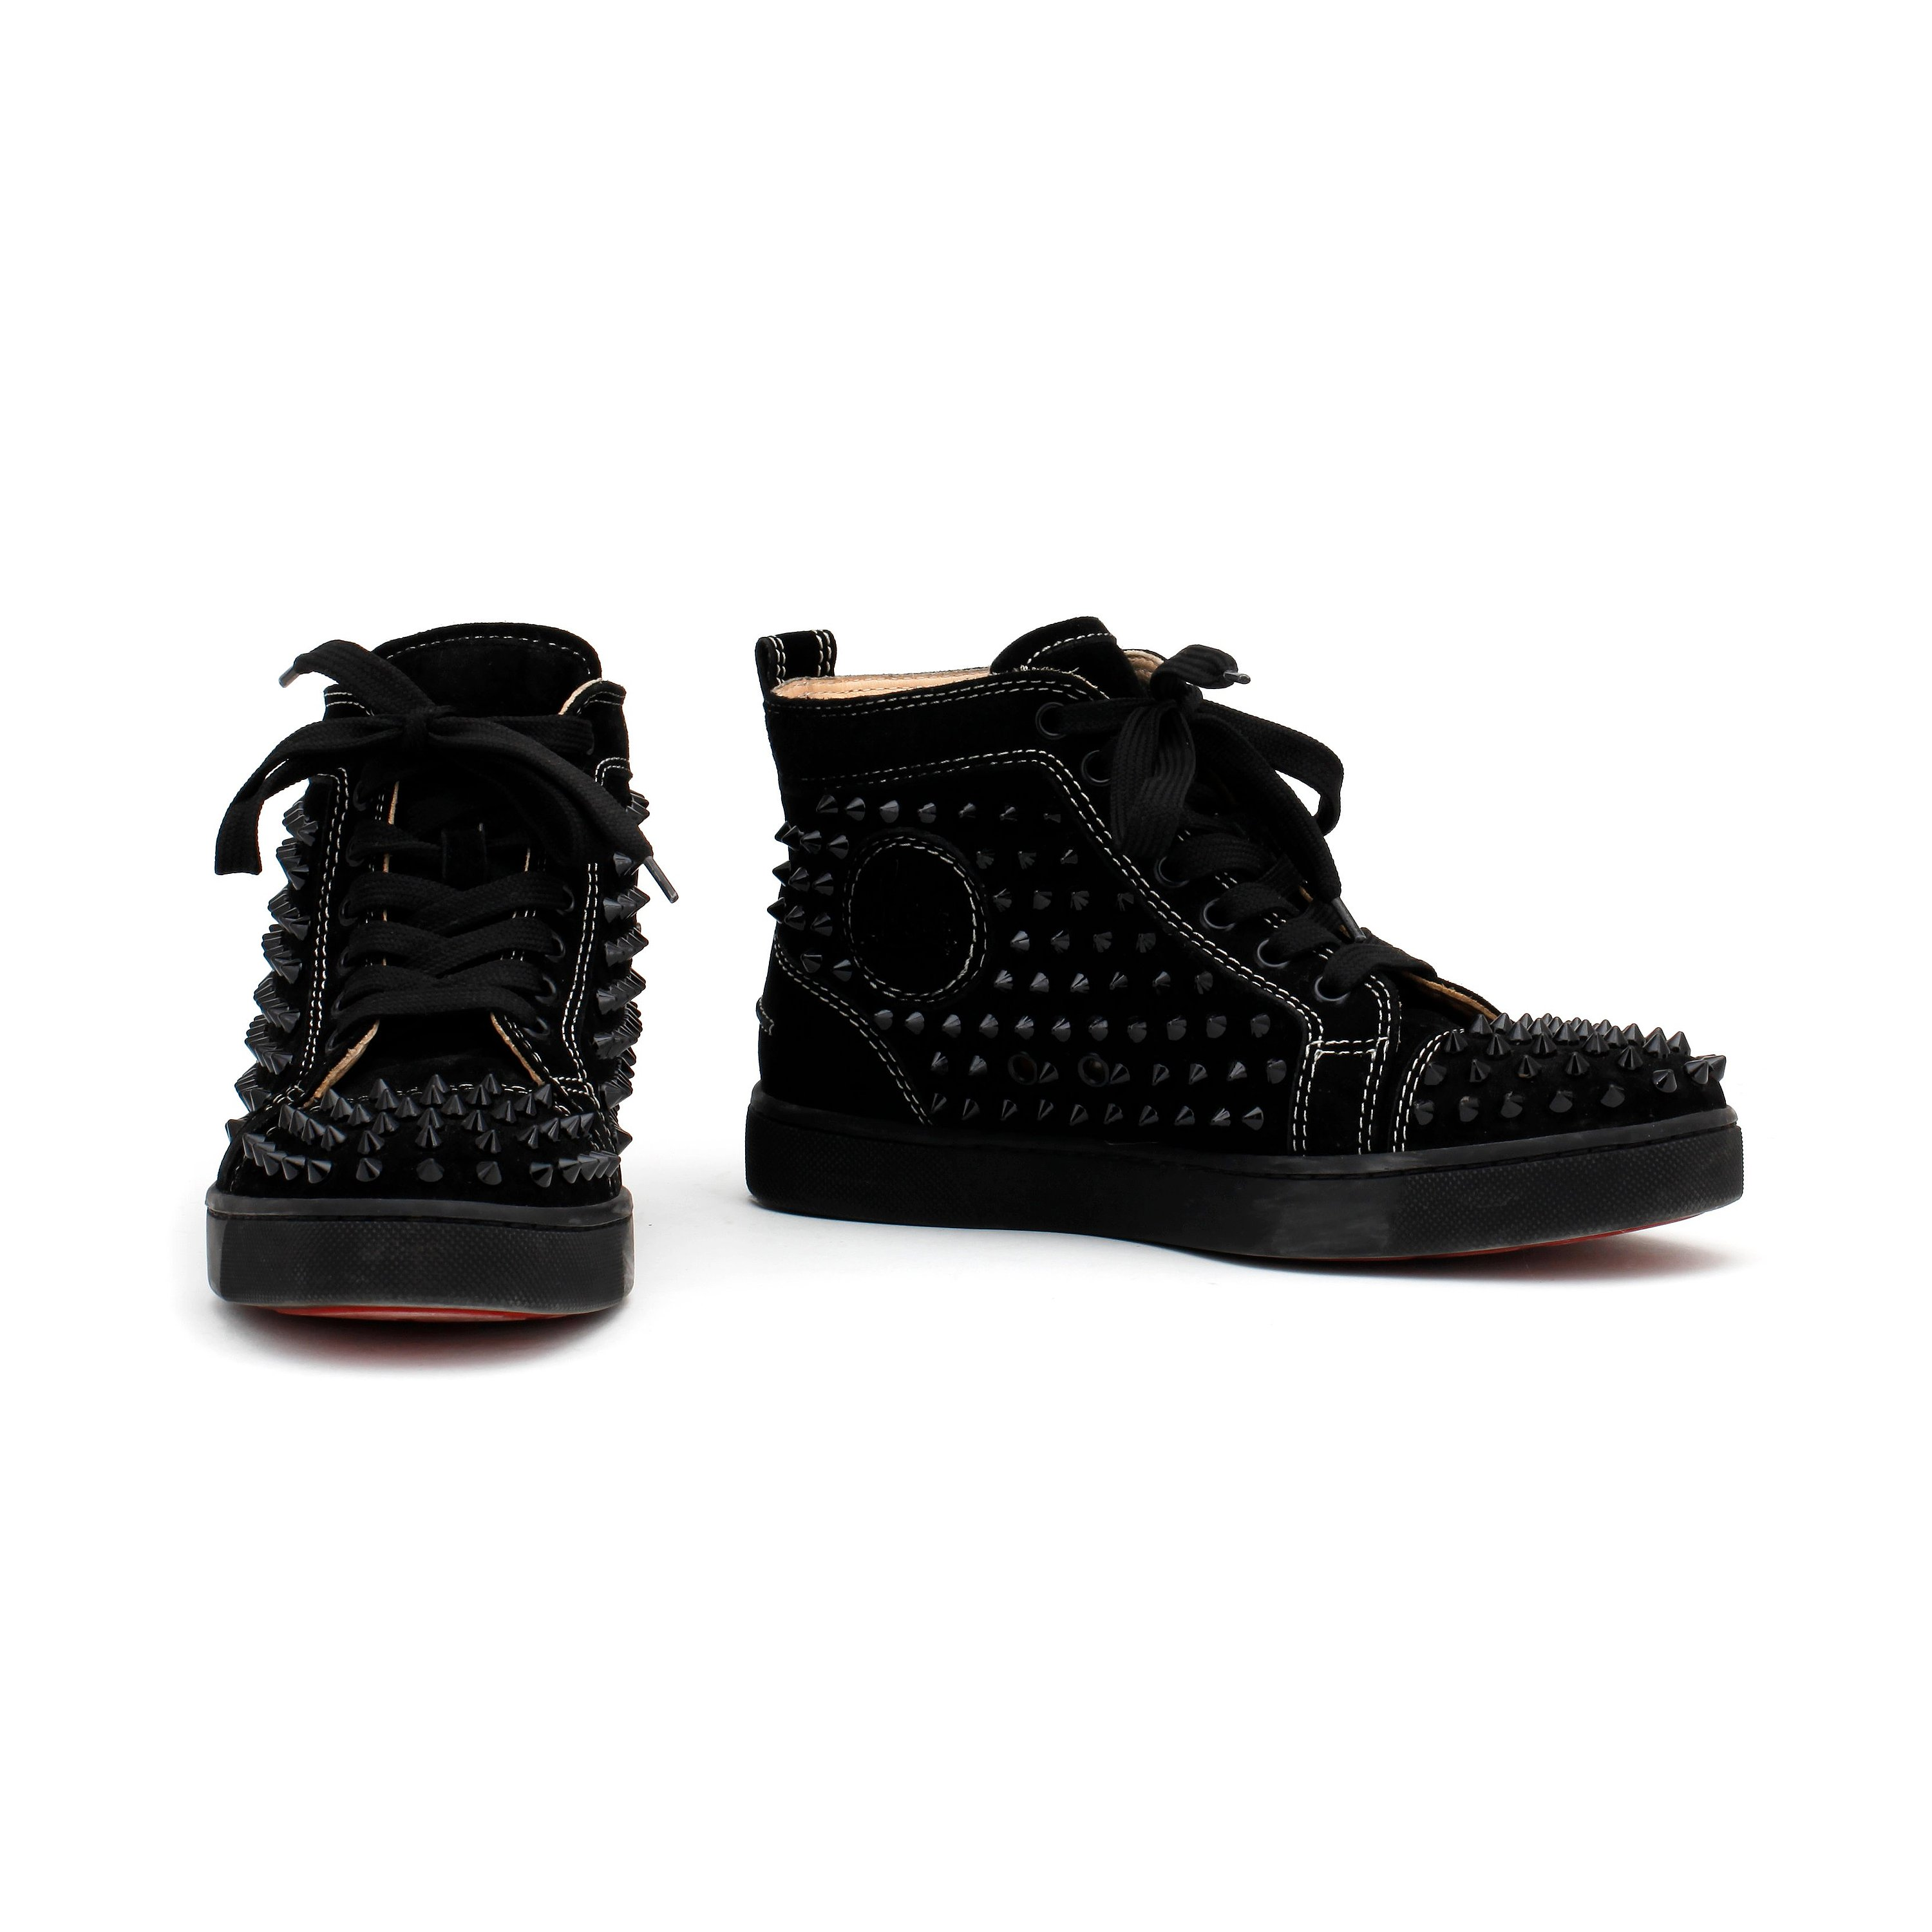 Christian Louboutin A Pair Of Black Suede Sneakers Louis Women S